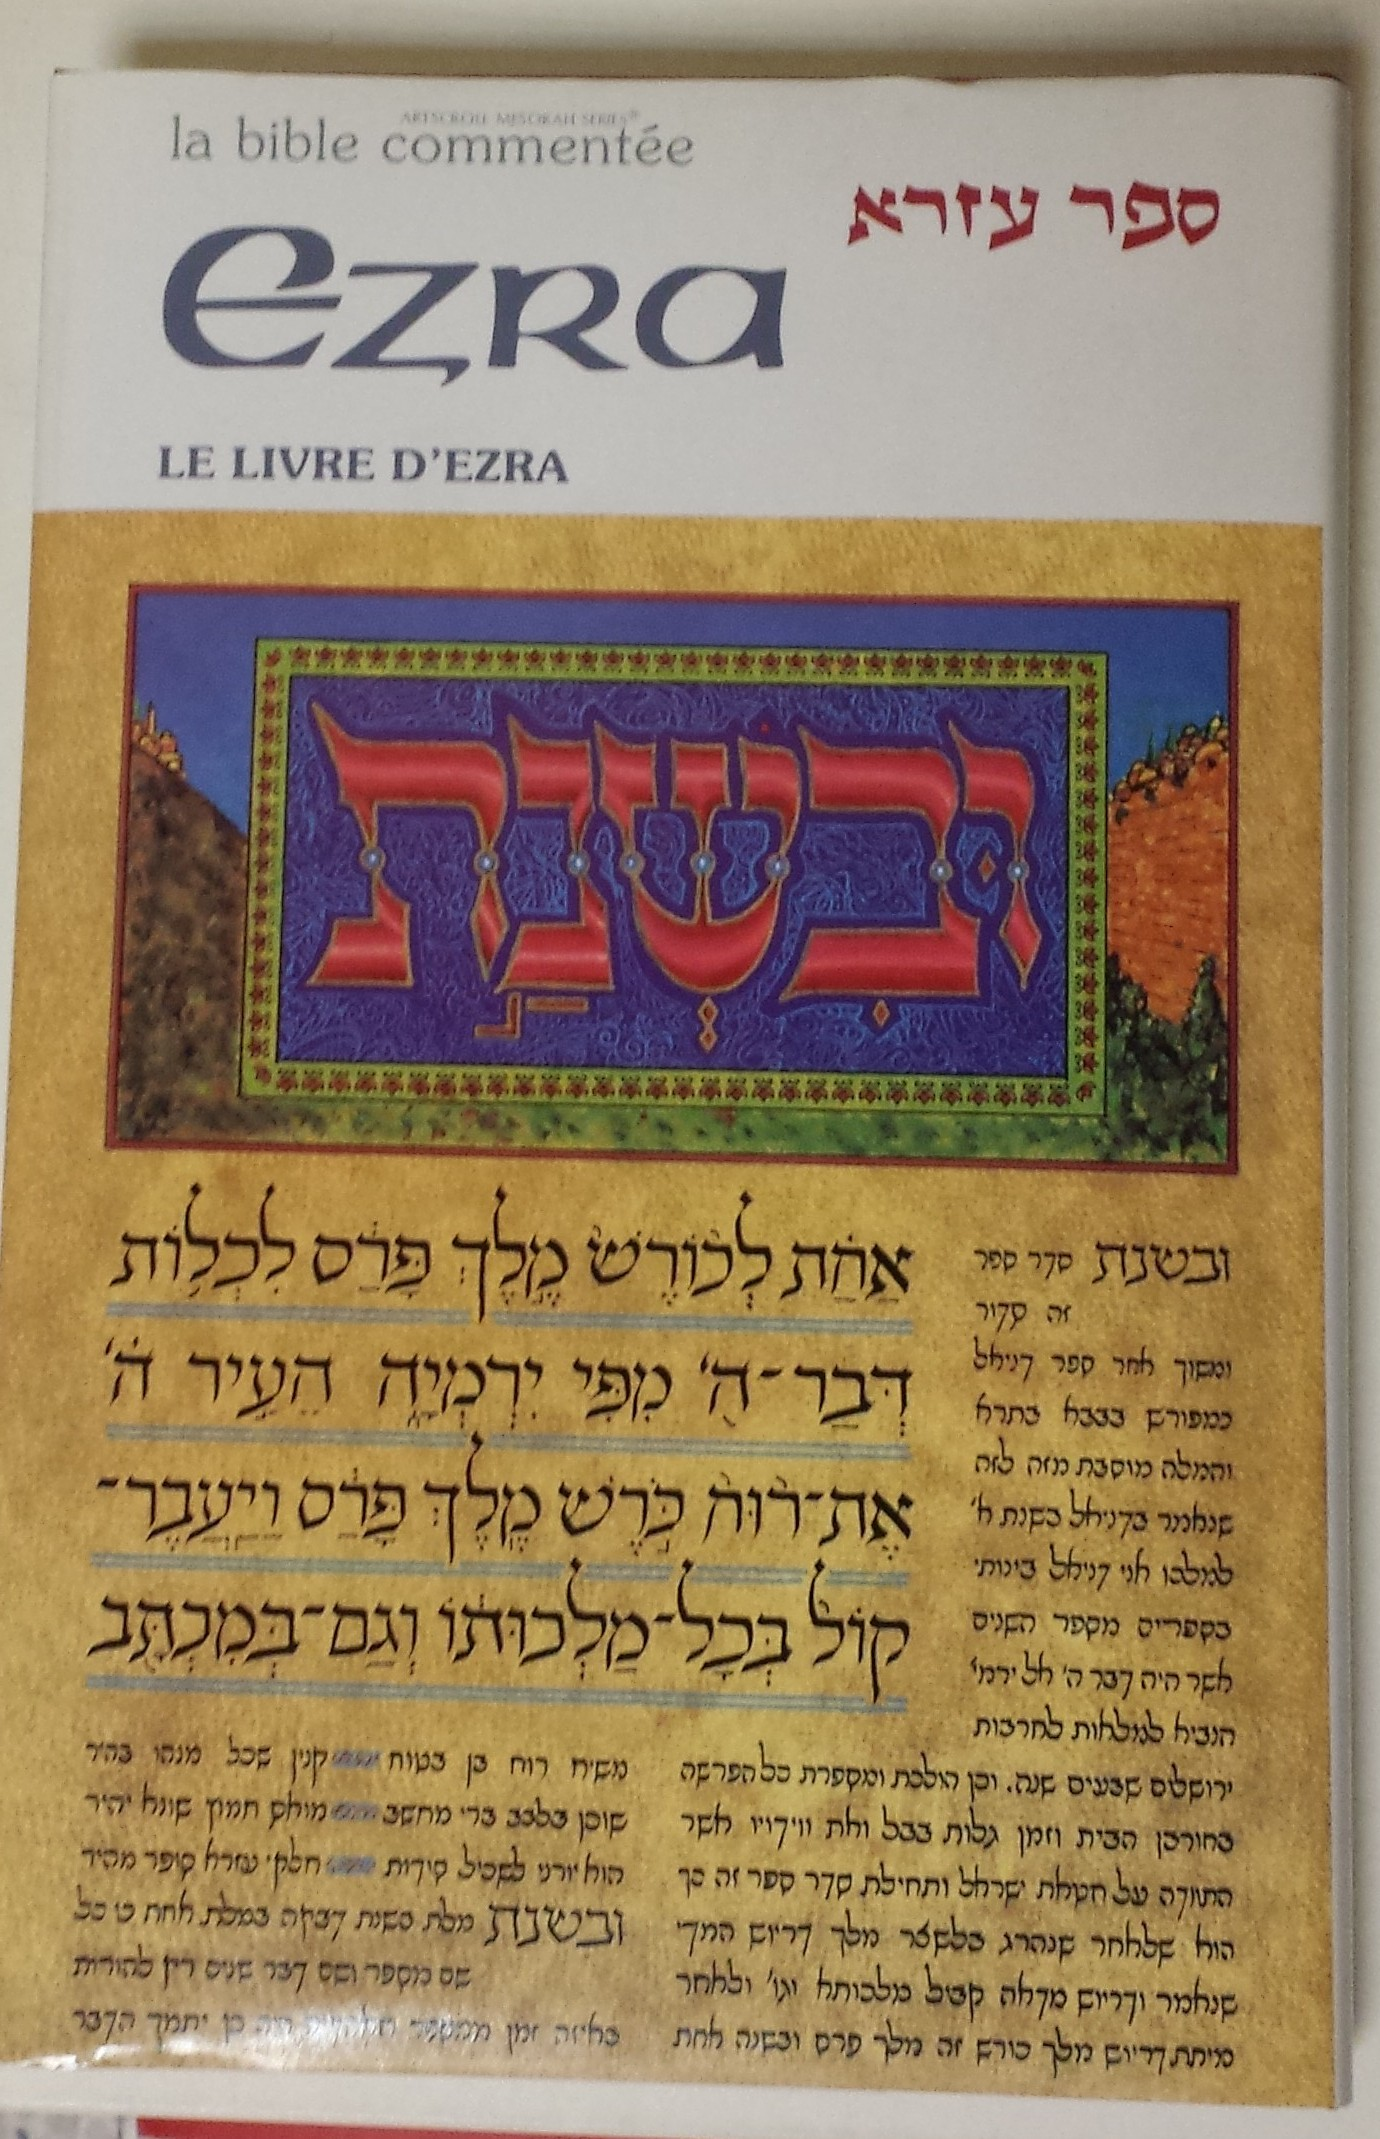 Ezra - Collection la Bible commentée  Artscroll